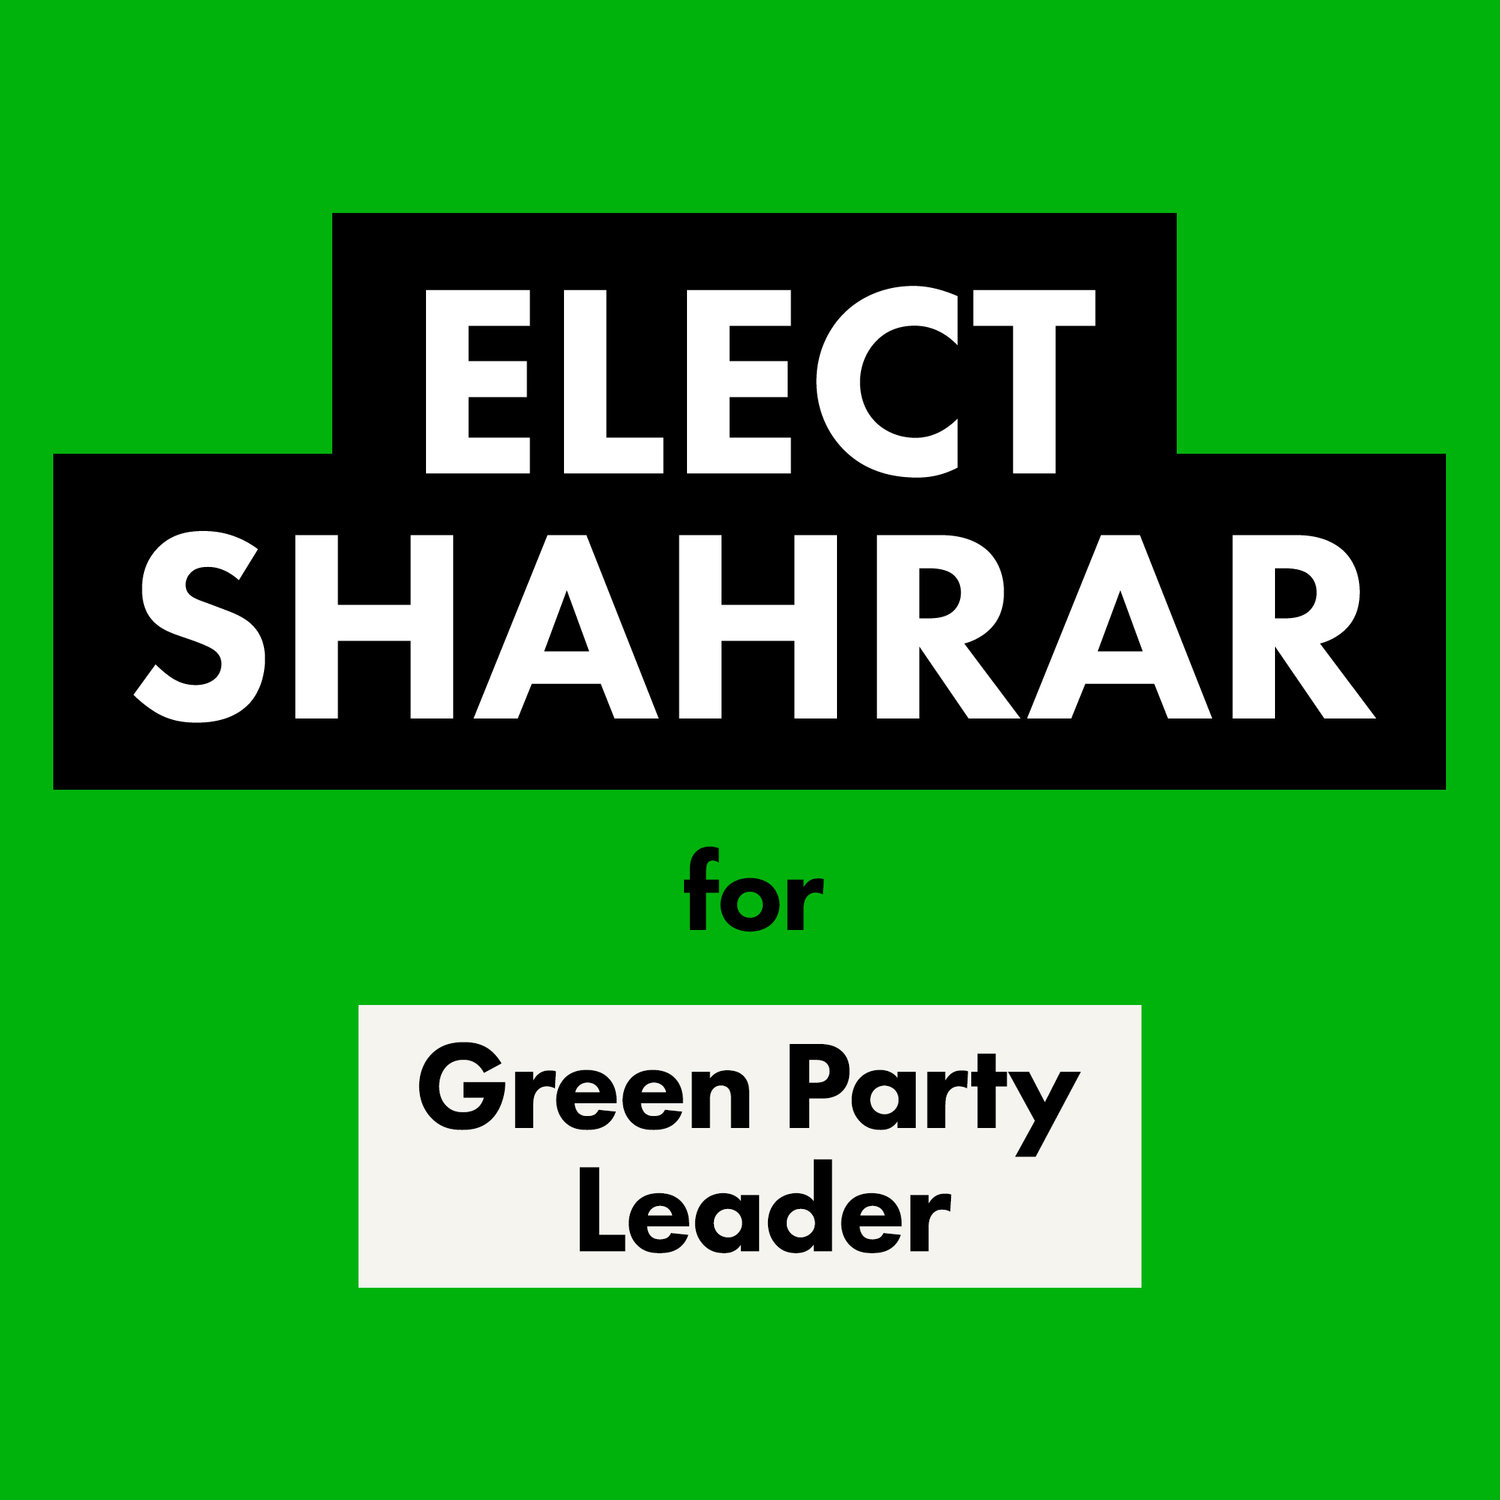 Elect Shahrar for Green Party Leader